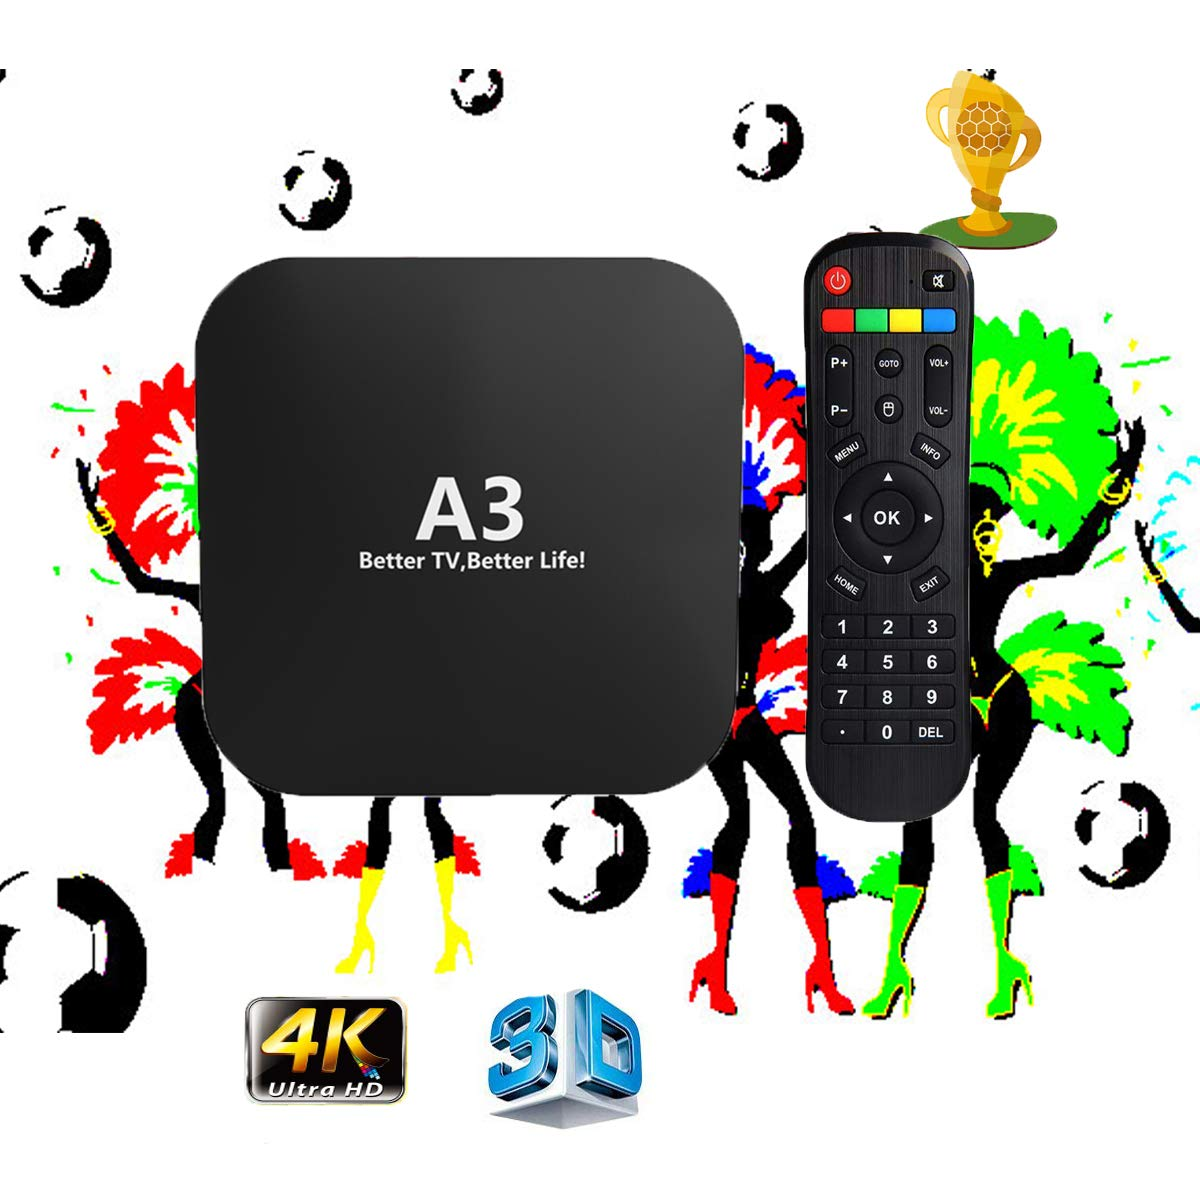 IPTV Brazilian Box New Upgraded Box Brasil Canasis TV, Brazilian Live Channels Films Movies